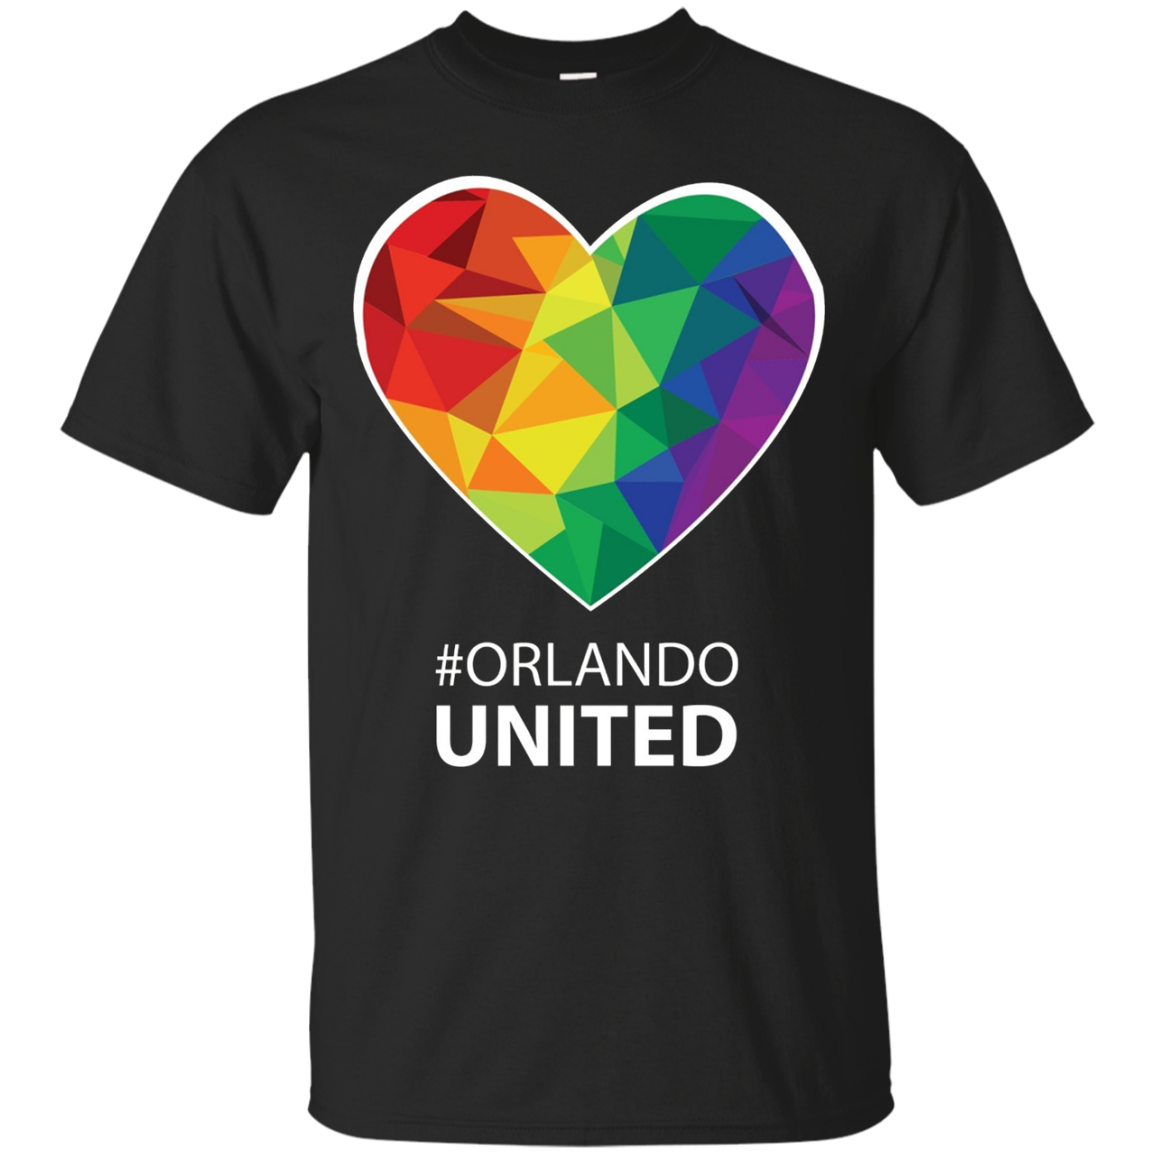 Orlando United - Be Strong Orlando T-shirt